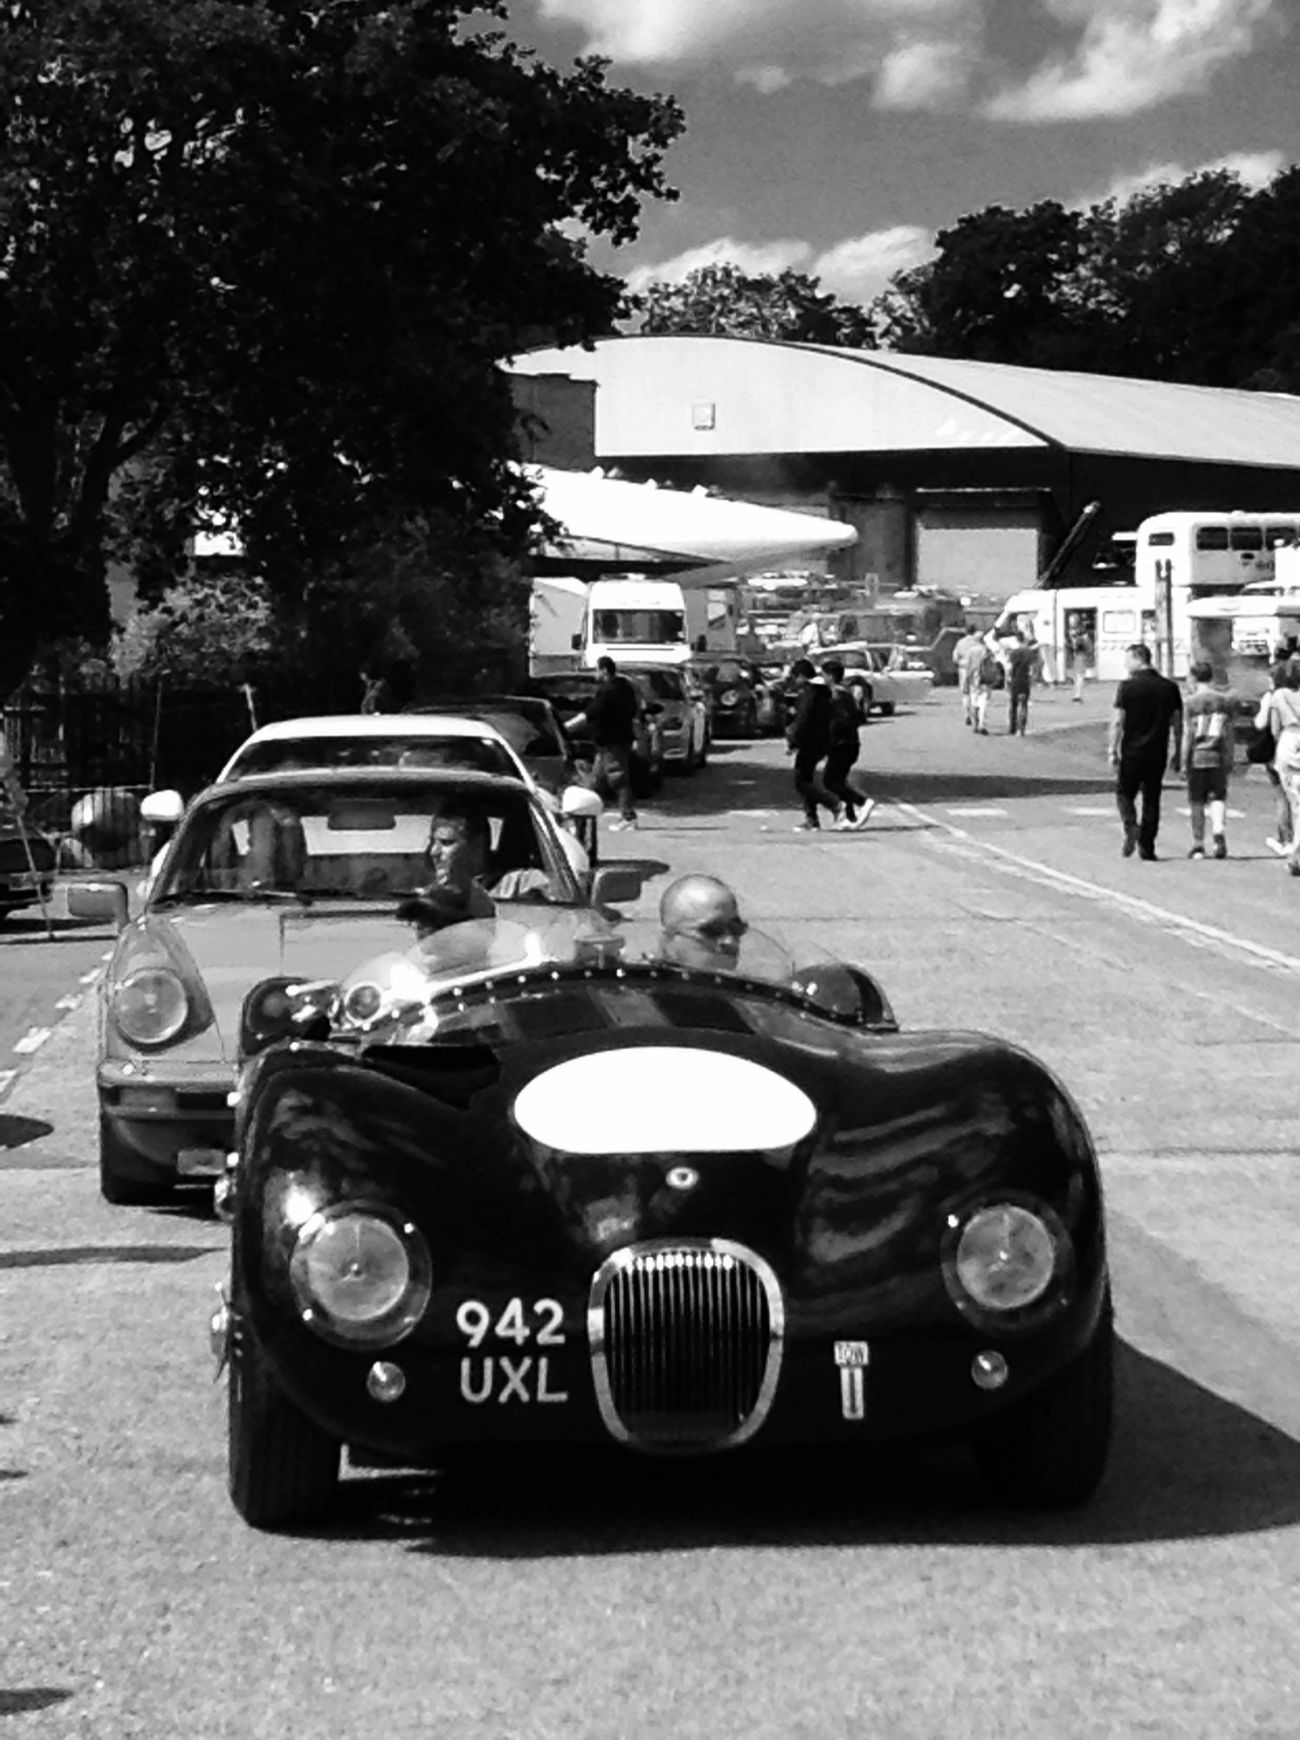 C-Type Jaguar Classic Cars JaguarC-Type Brooklandsmuseum Black And White First Eyeem Photo